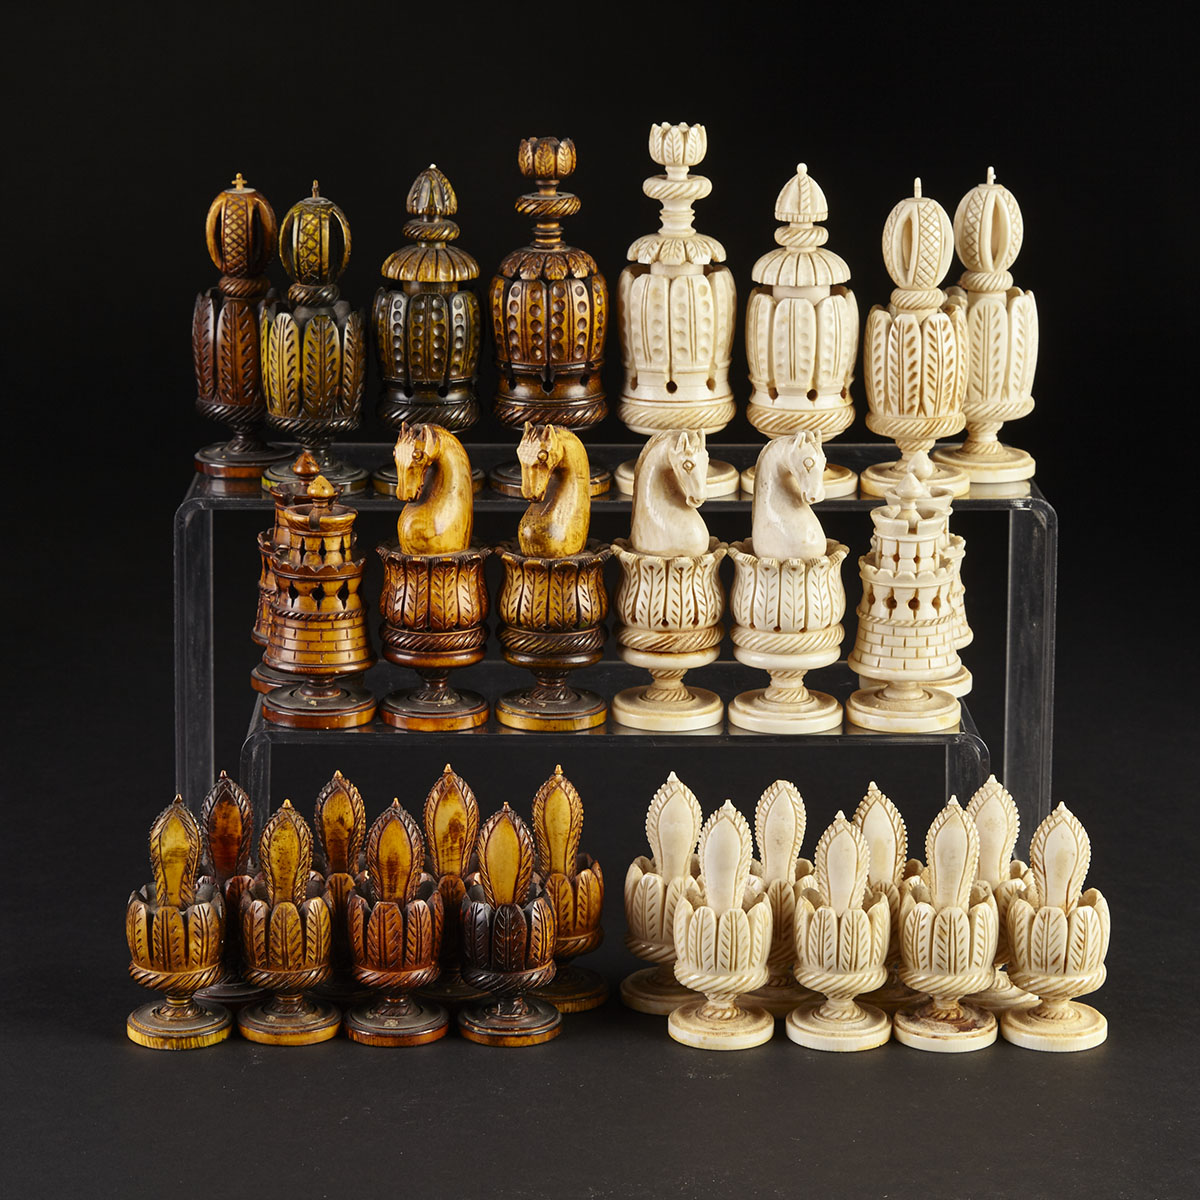 Turned and Carved 'Spanish Pulpit' Chess Set, c.1800